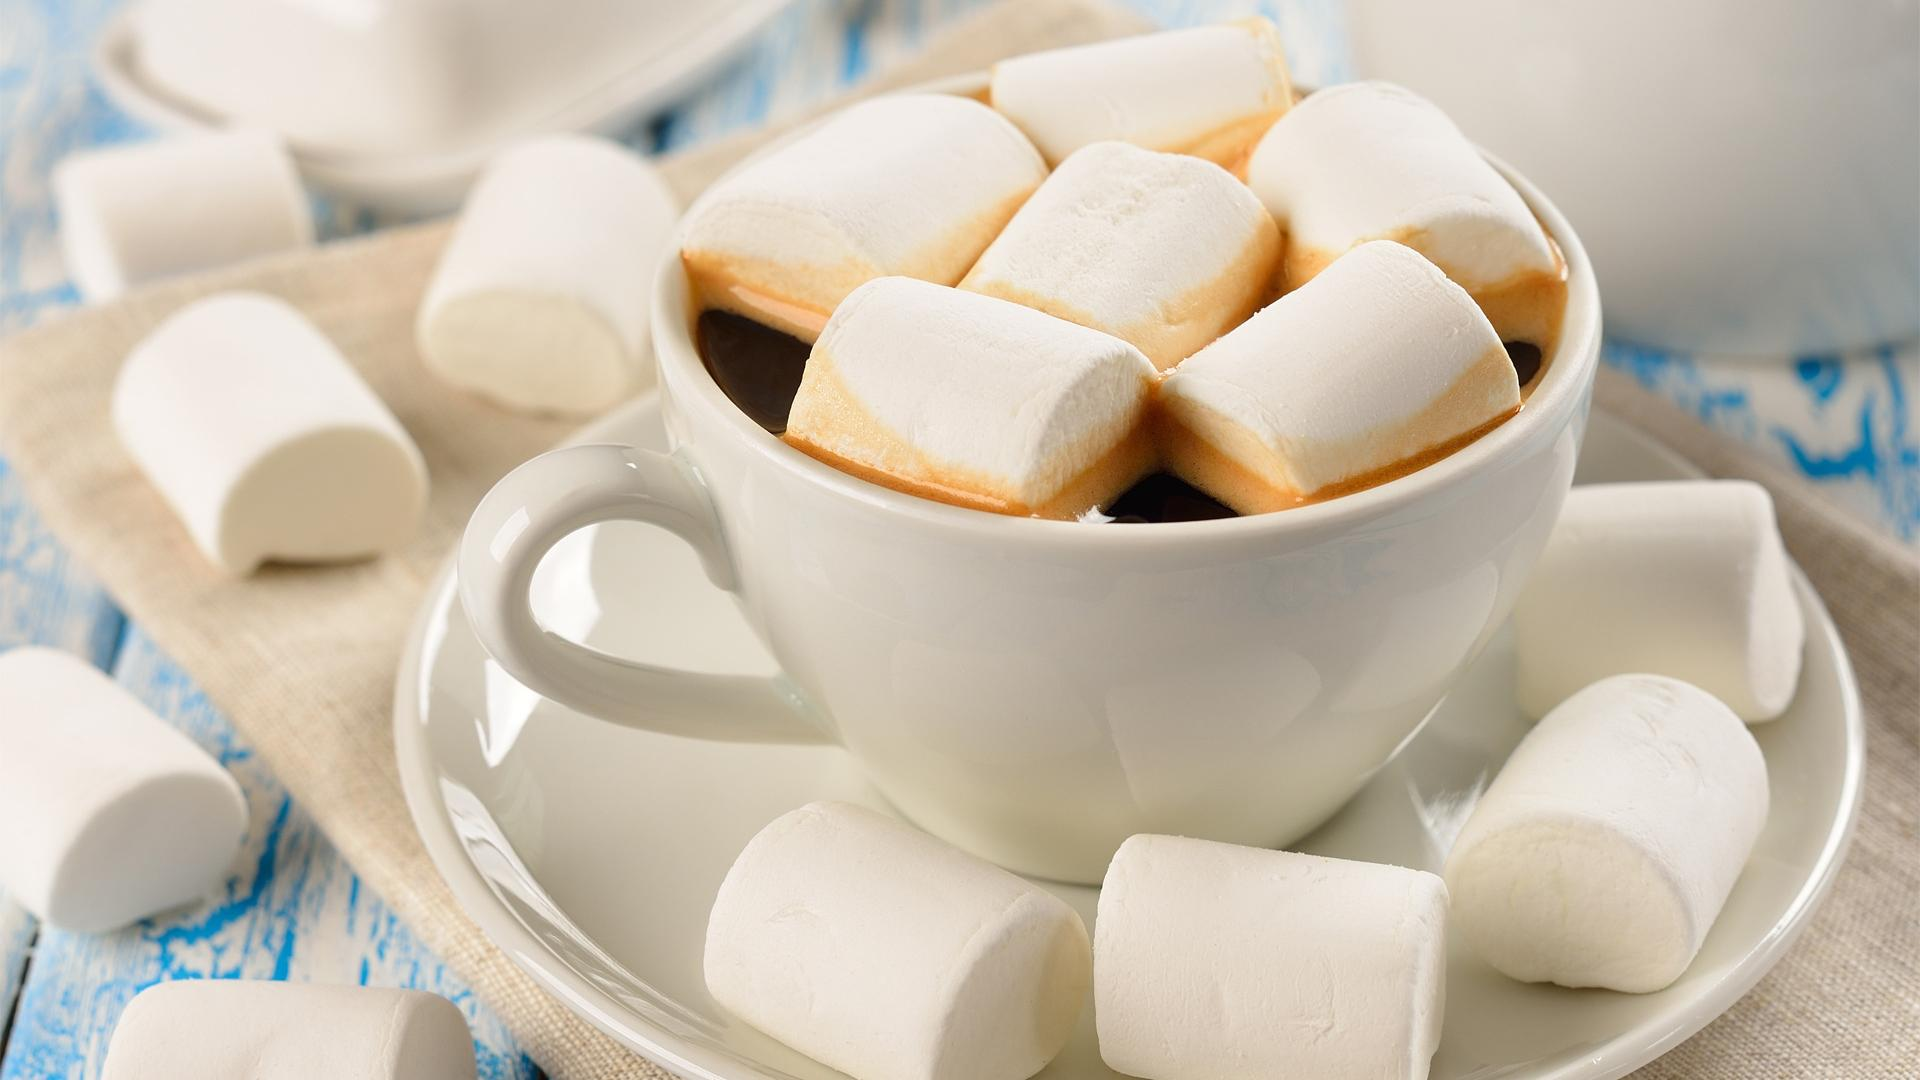 37 cute stuff wallpapers marshmallow and a cup of coffee - Cute coffee wallpaper ...